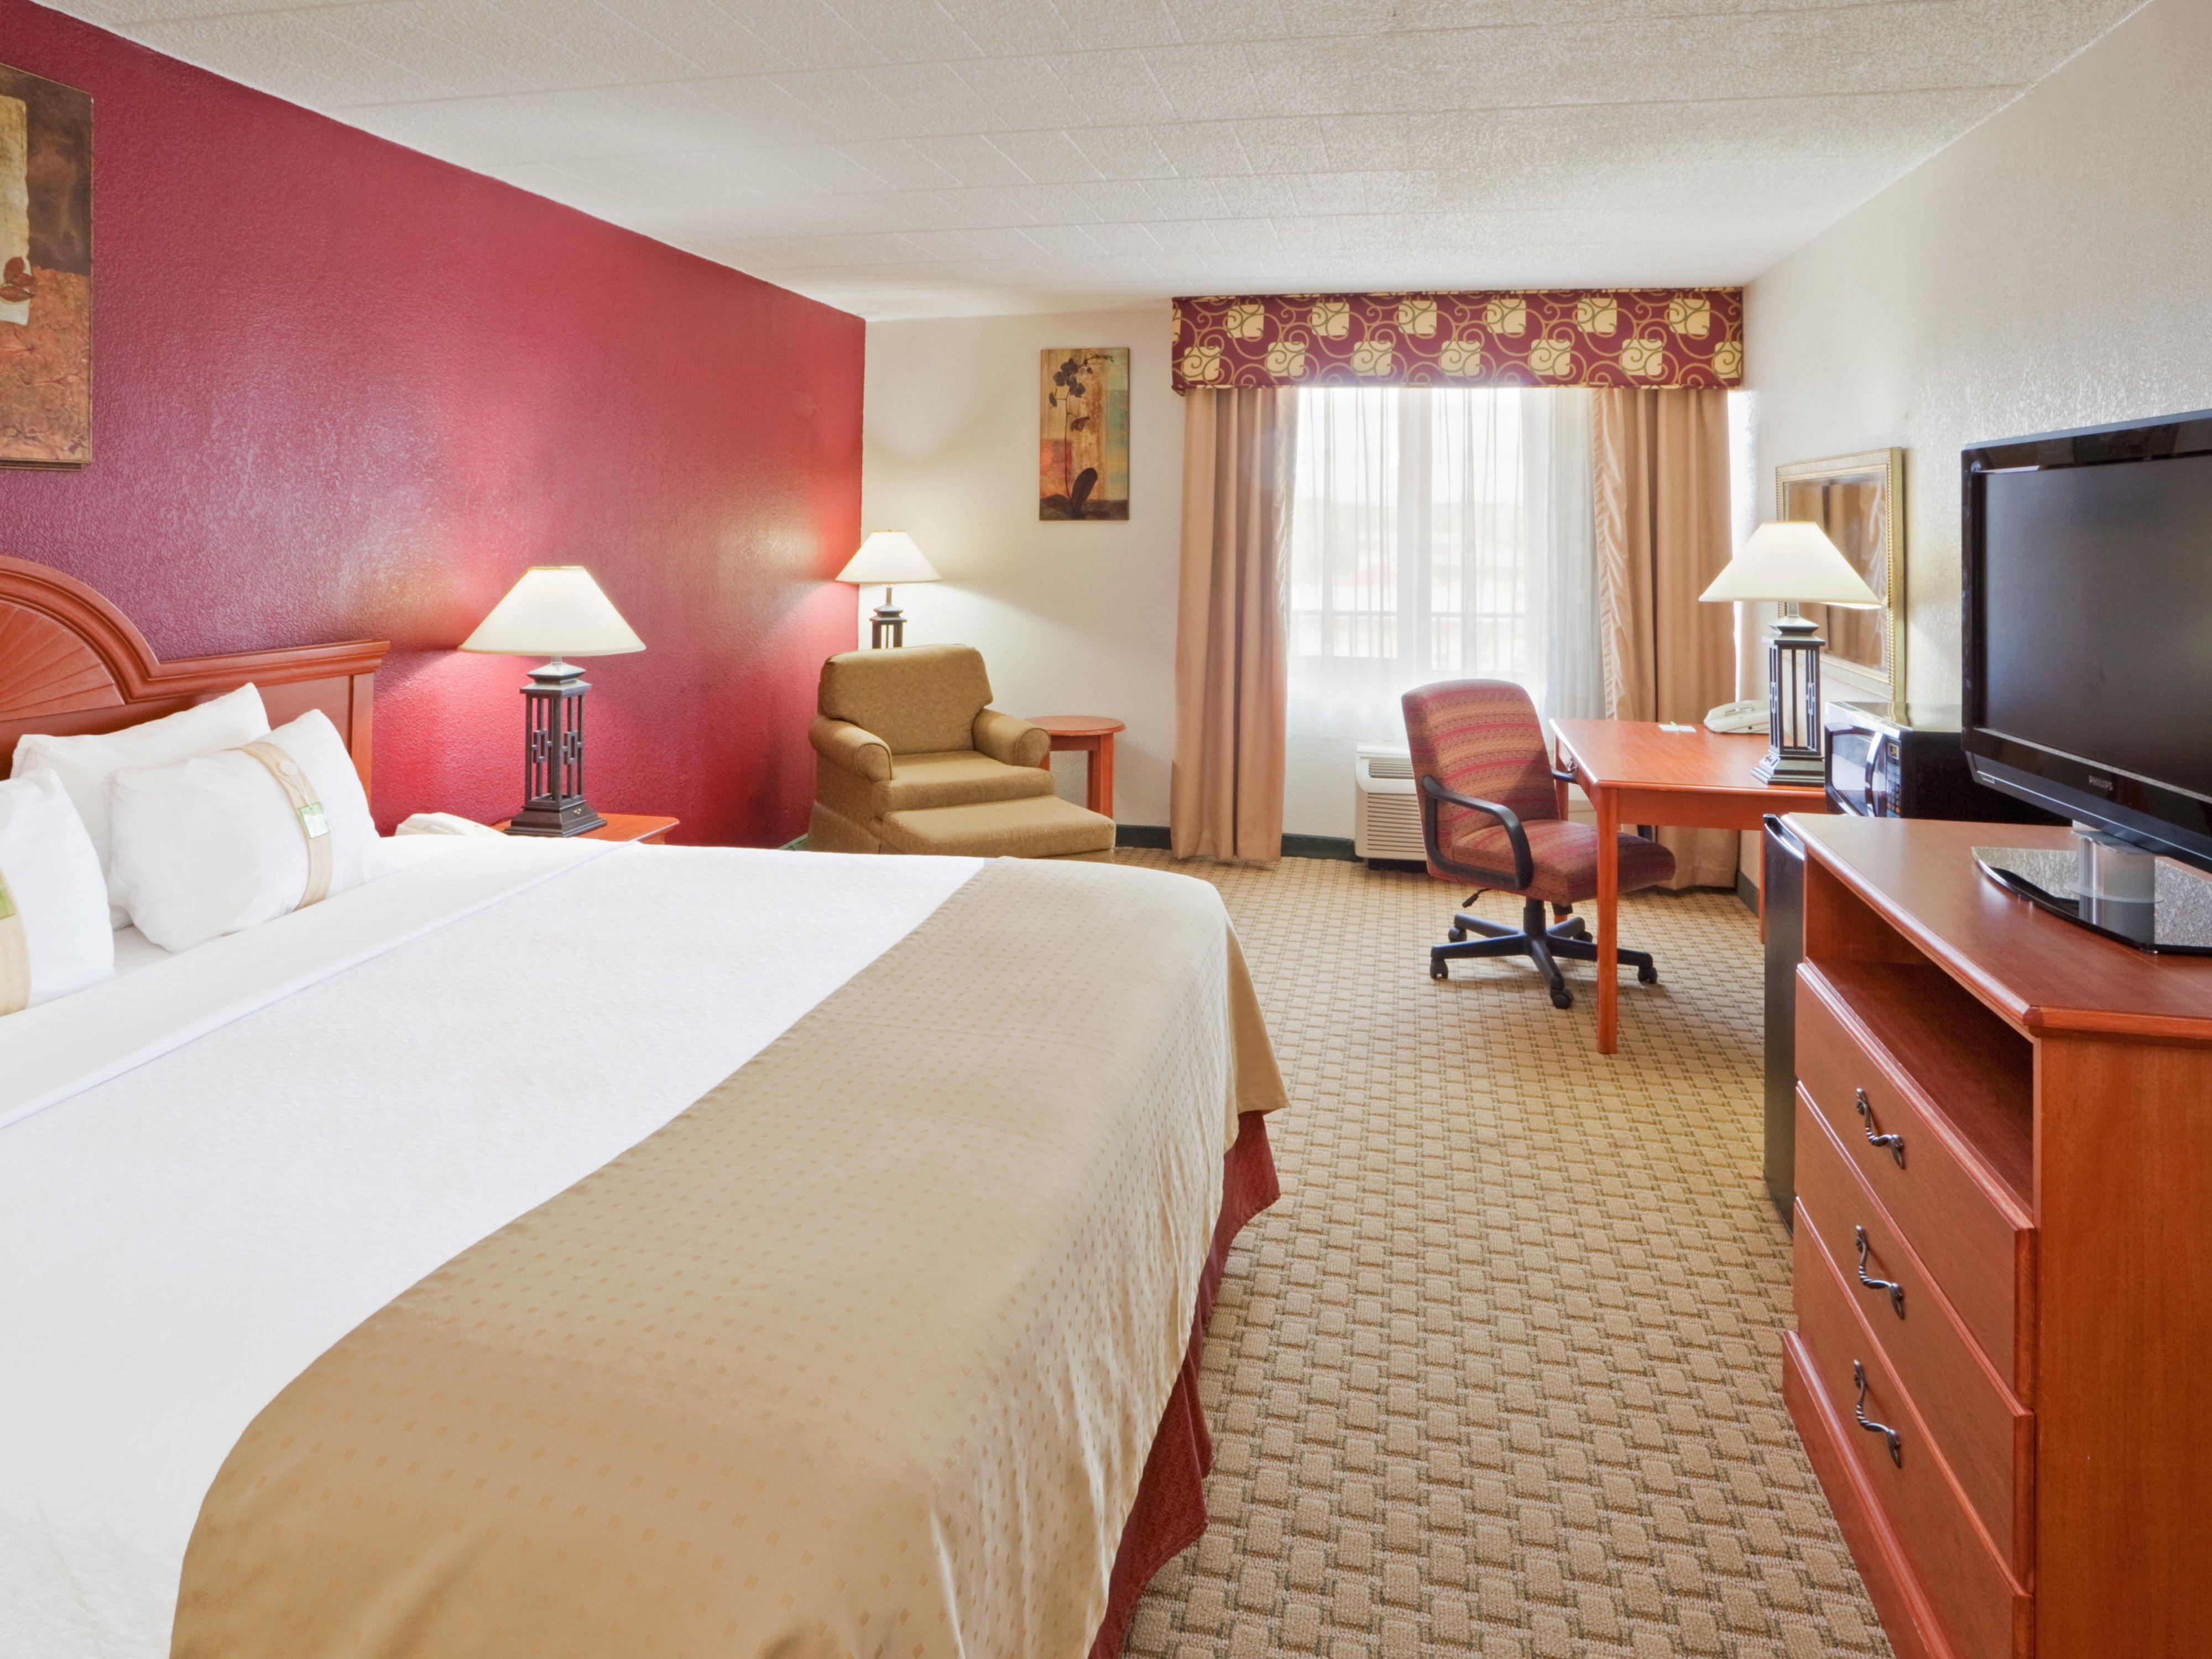 Our spacious king bed room will guarantee comfort!